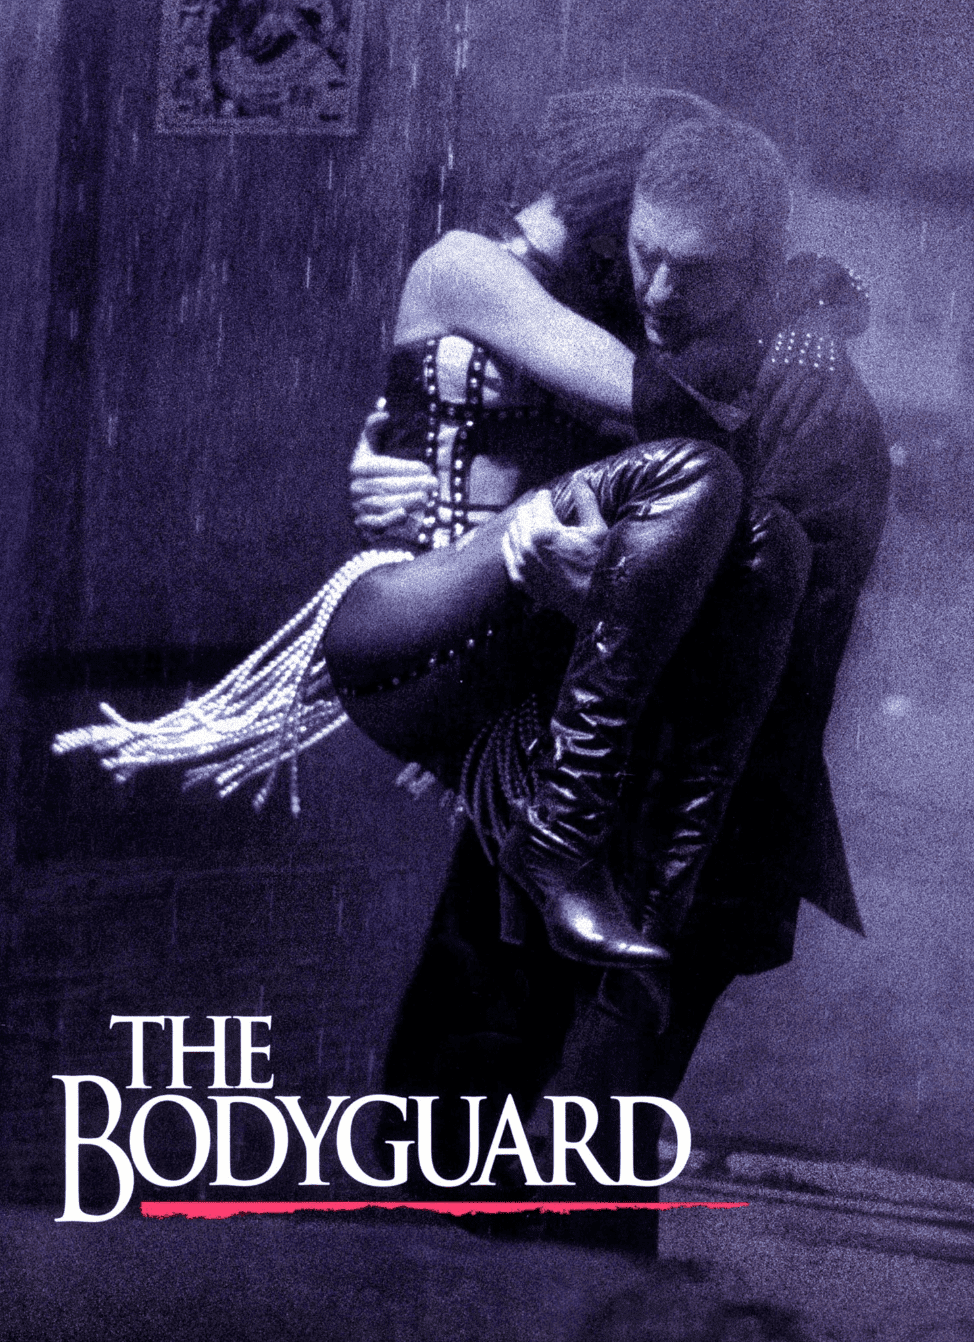 """The iconic poster of the movie """"The Bodyguard"""". 